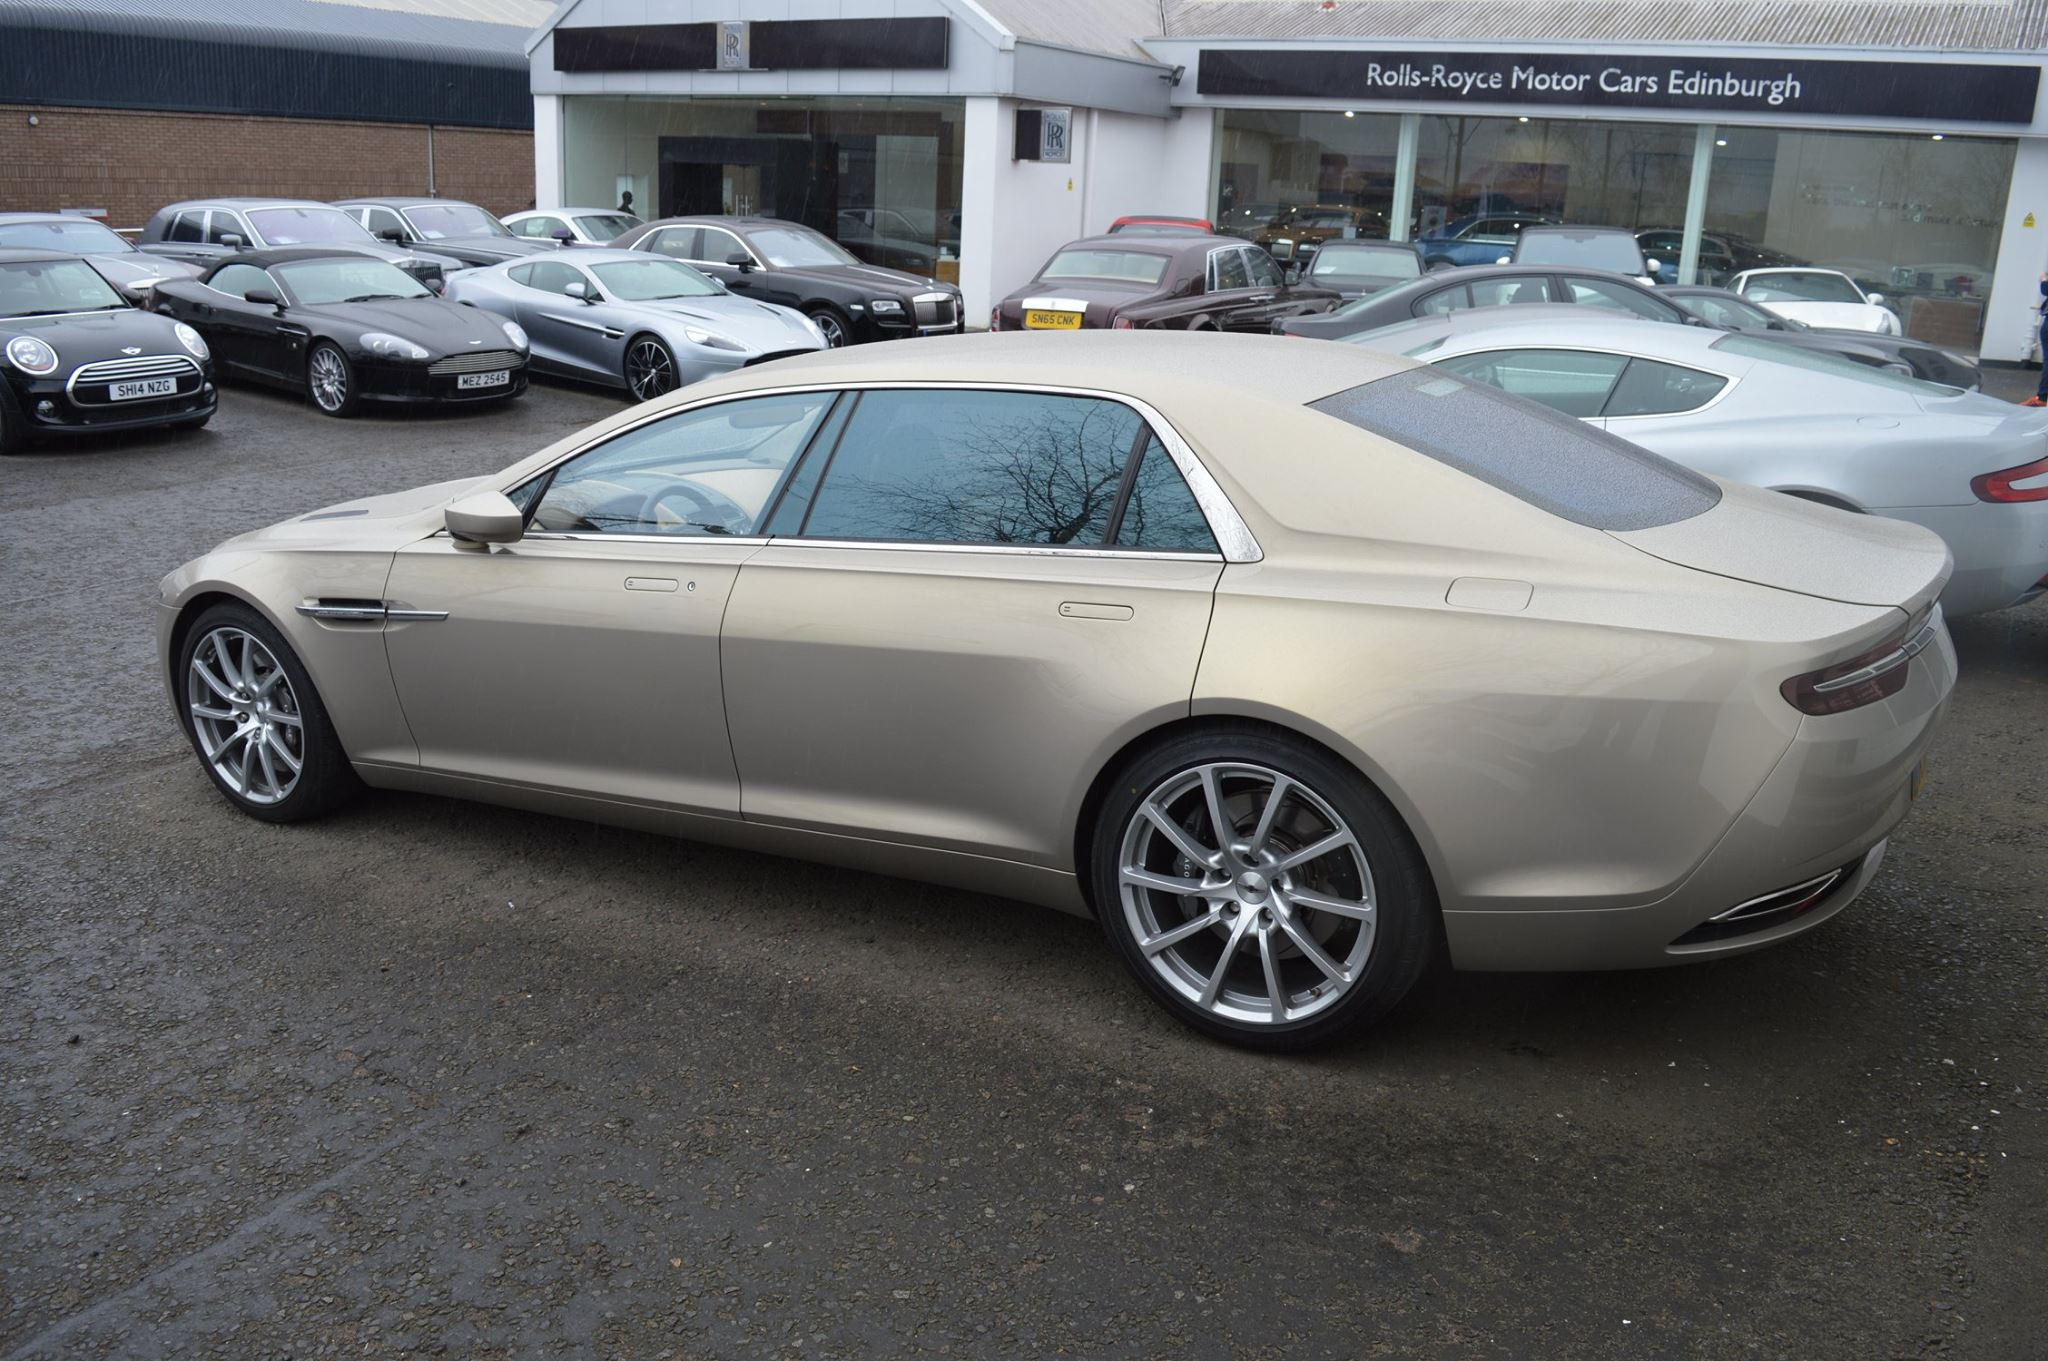 Rare Aston Martin Lagonda Taraf Snapped In Scotland